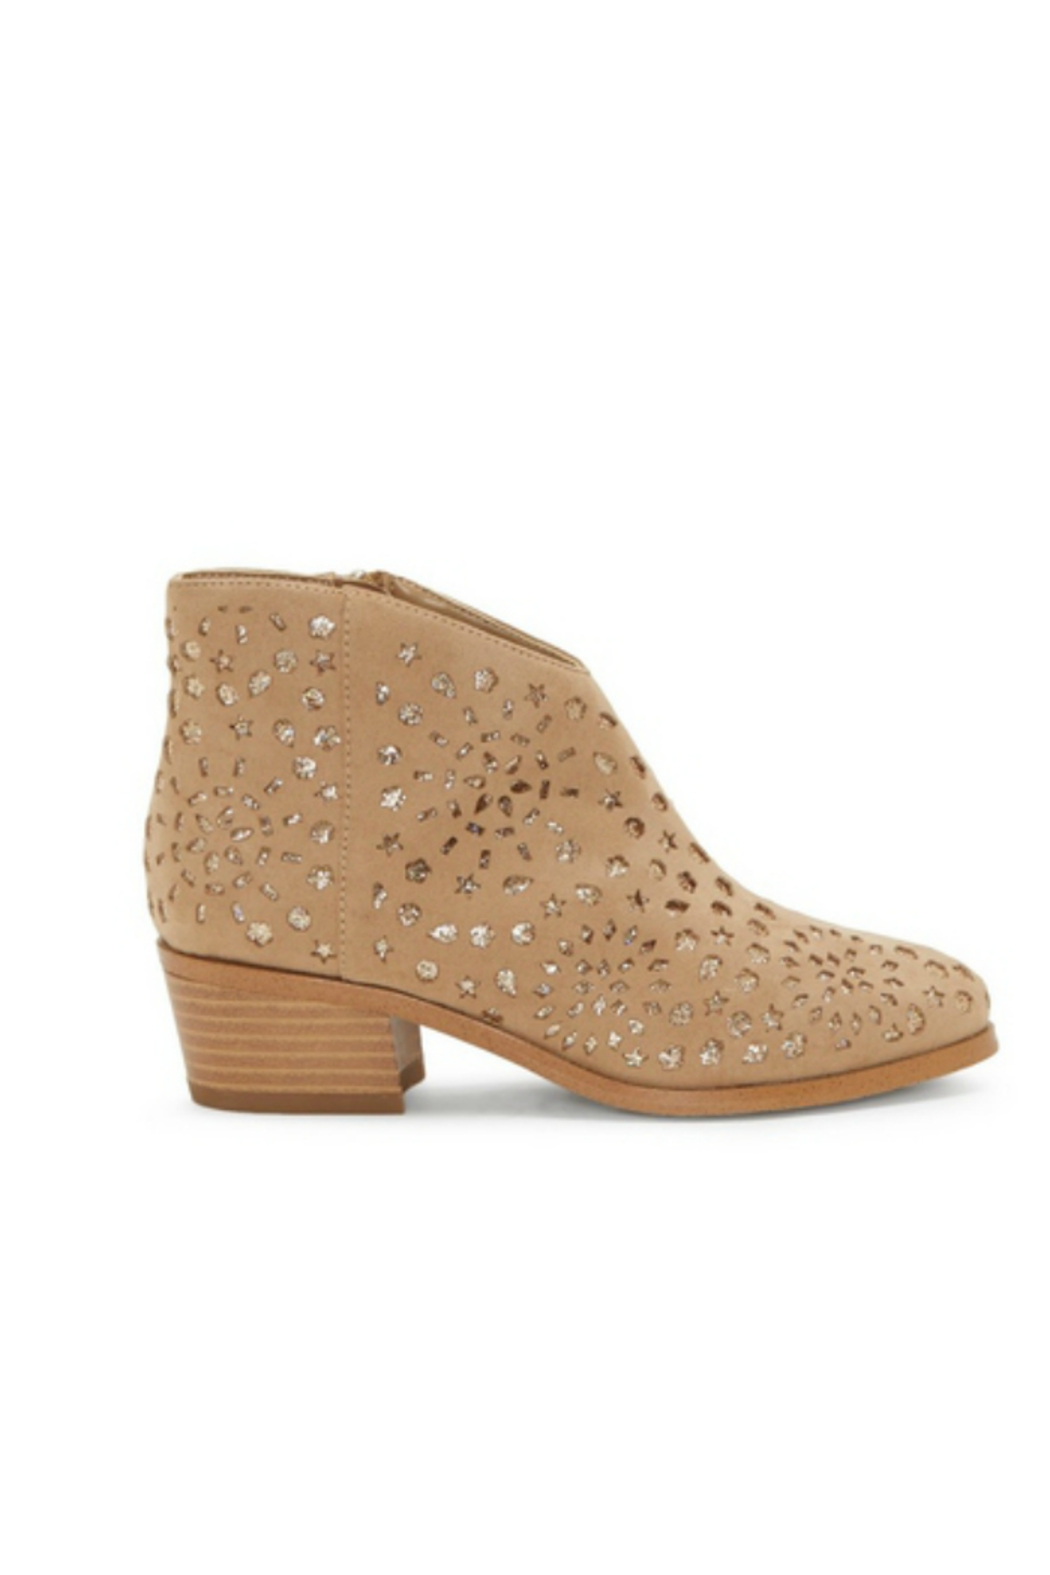 Vince Camuto CG-Philapia - Side Cropped Image